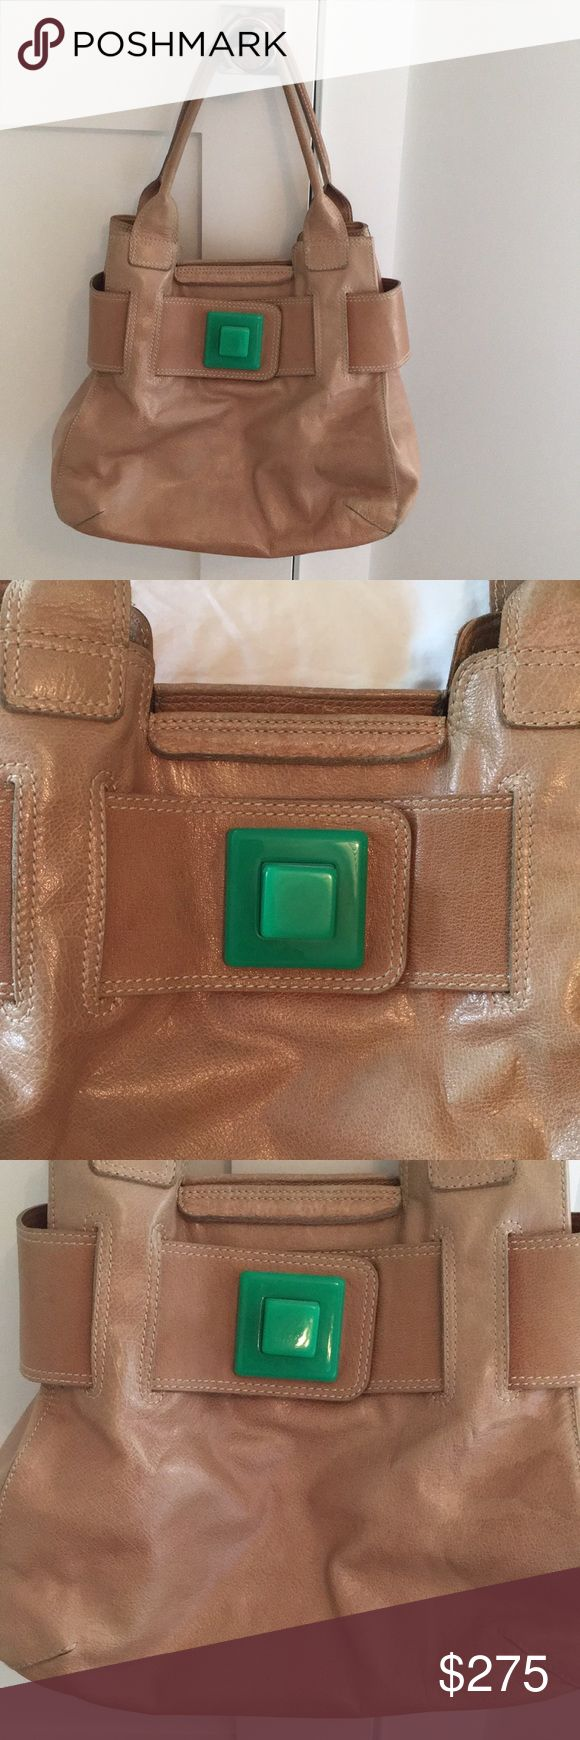 """Orla Kiely Leather bag w/green accent Very cool Orla Kiely tan leather bag with green accent. Measurements 20""""x13"""" Used condition  Matching Wallet also for sale Orla Kiely Bags Shoulder Bags"""